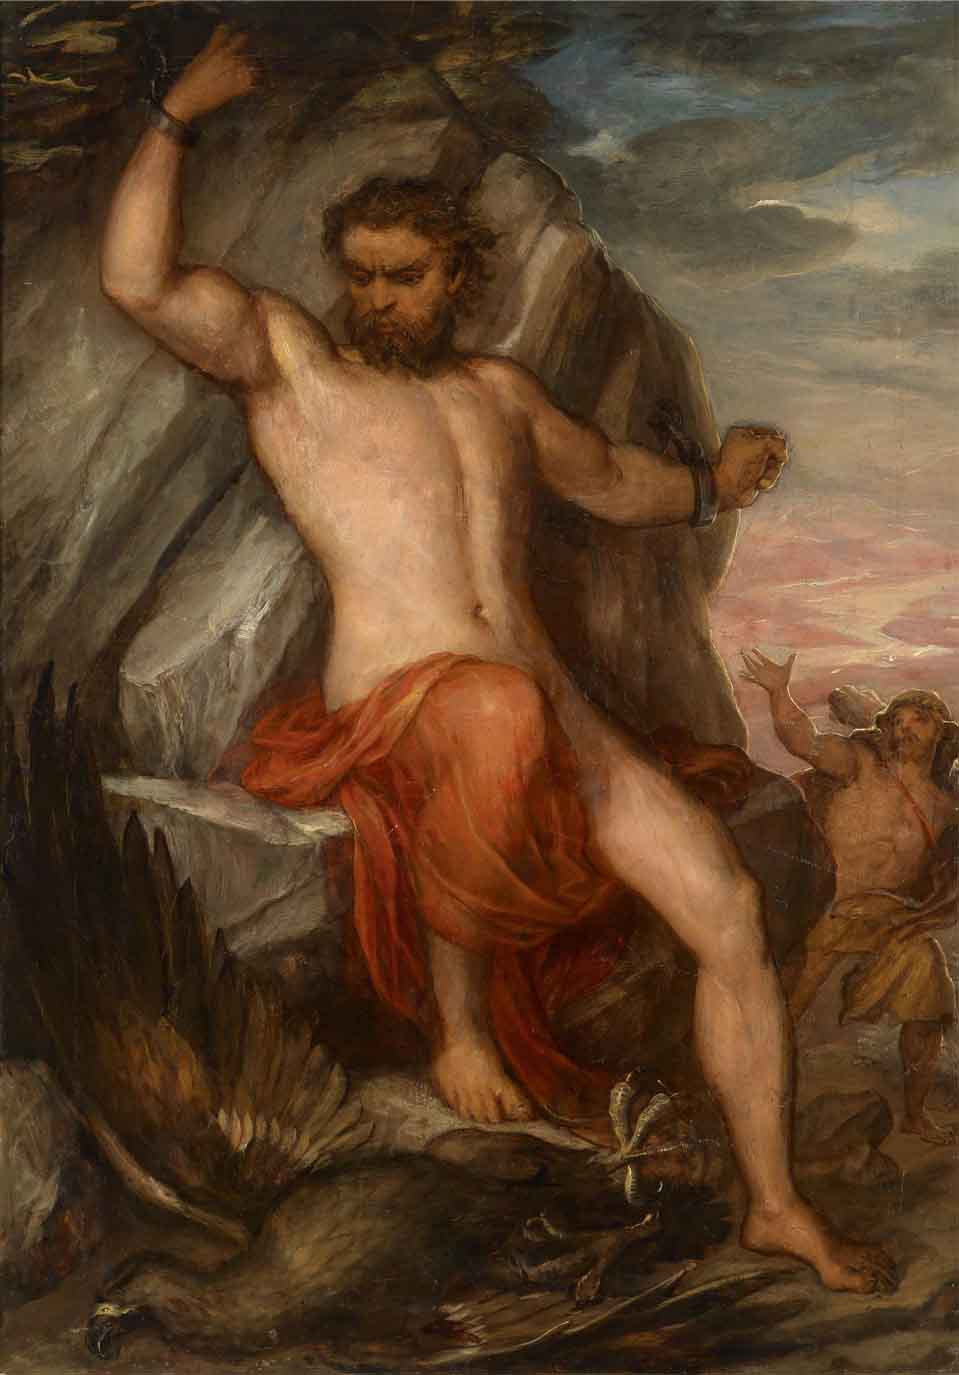 Prometheus - Greek Mythology